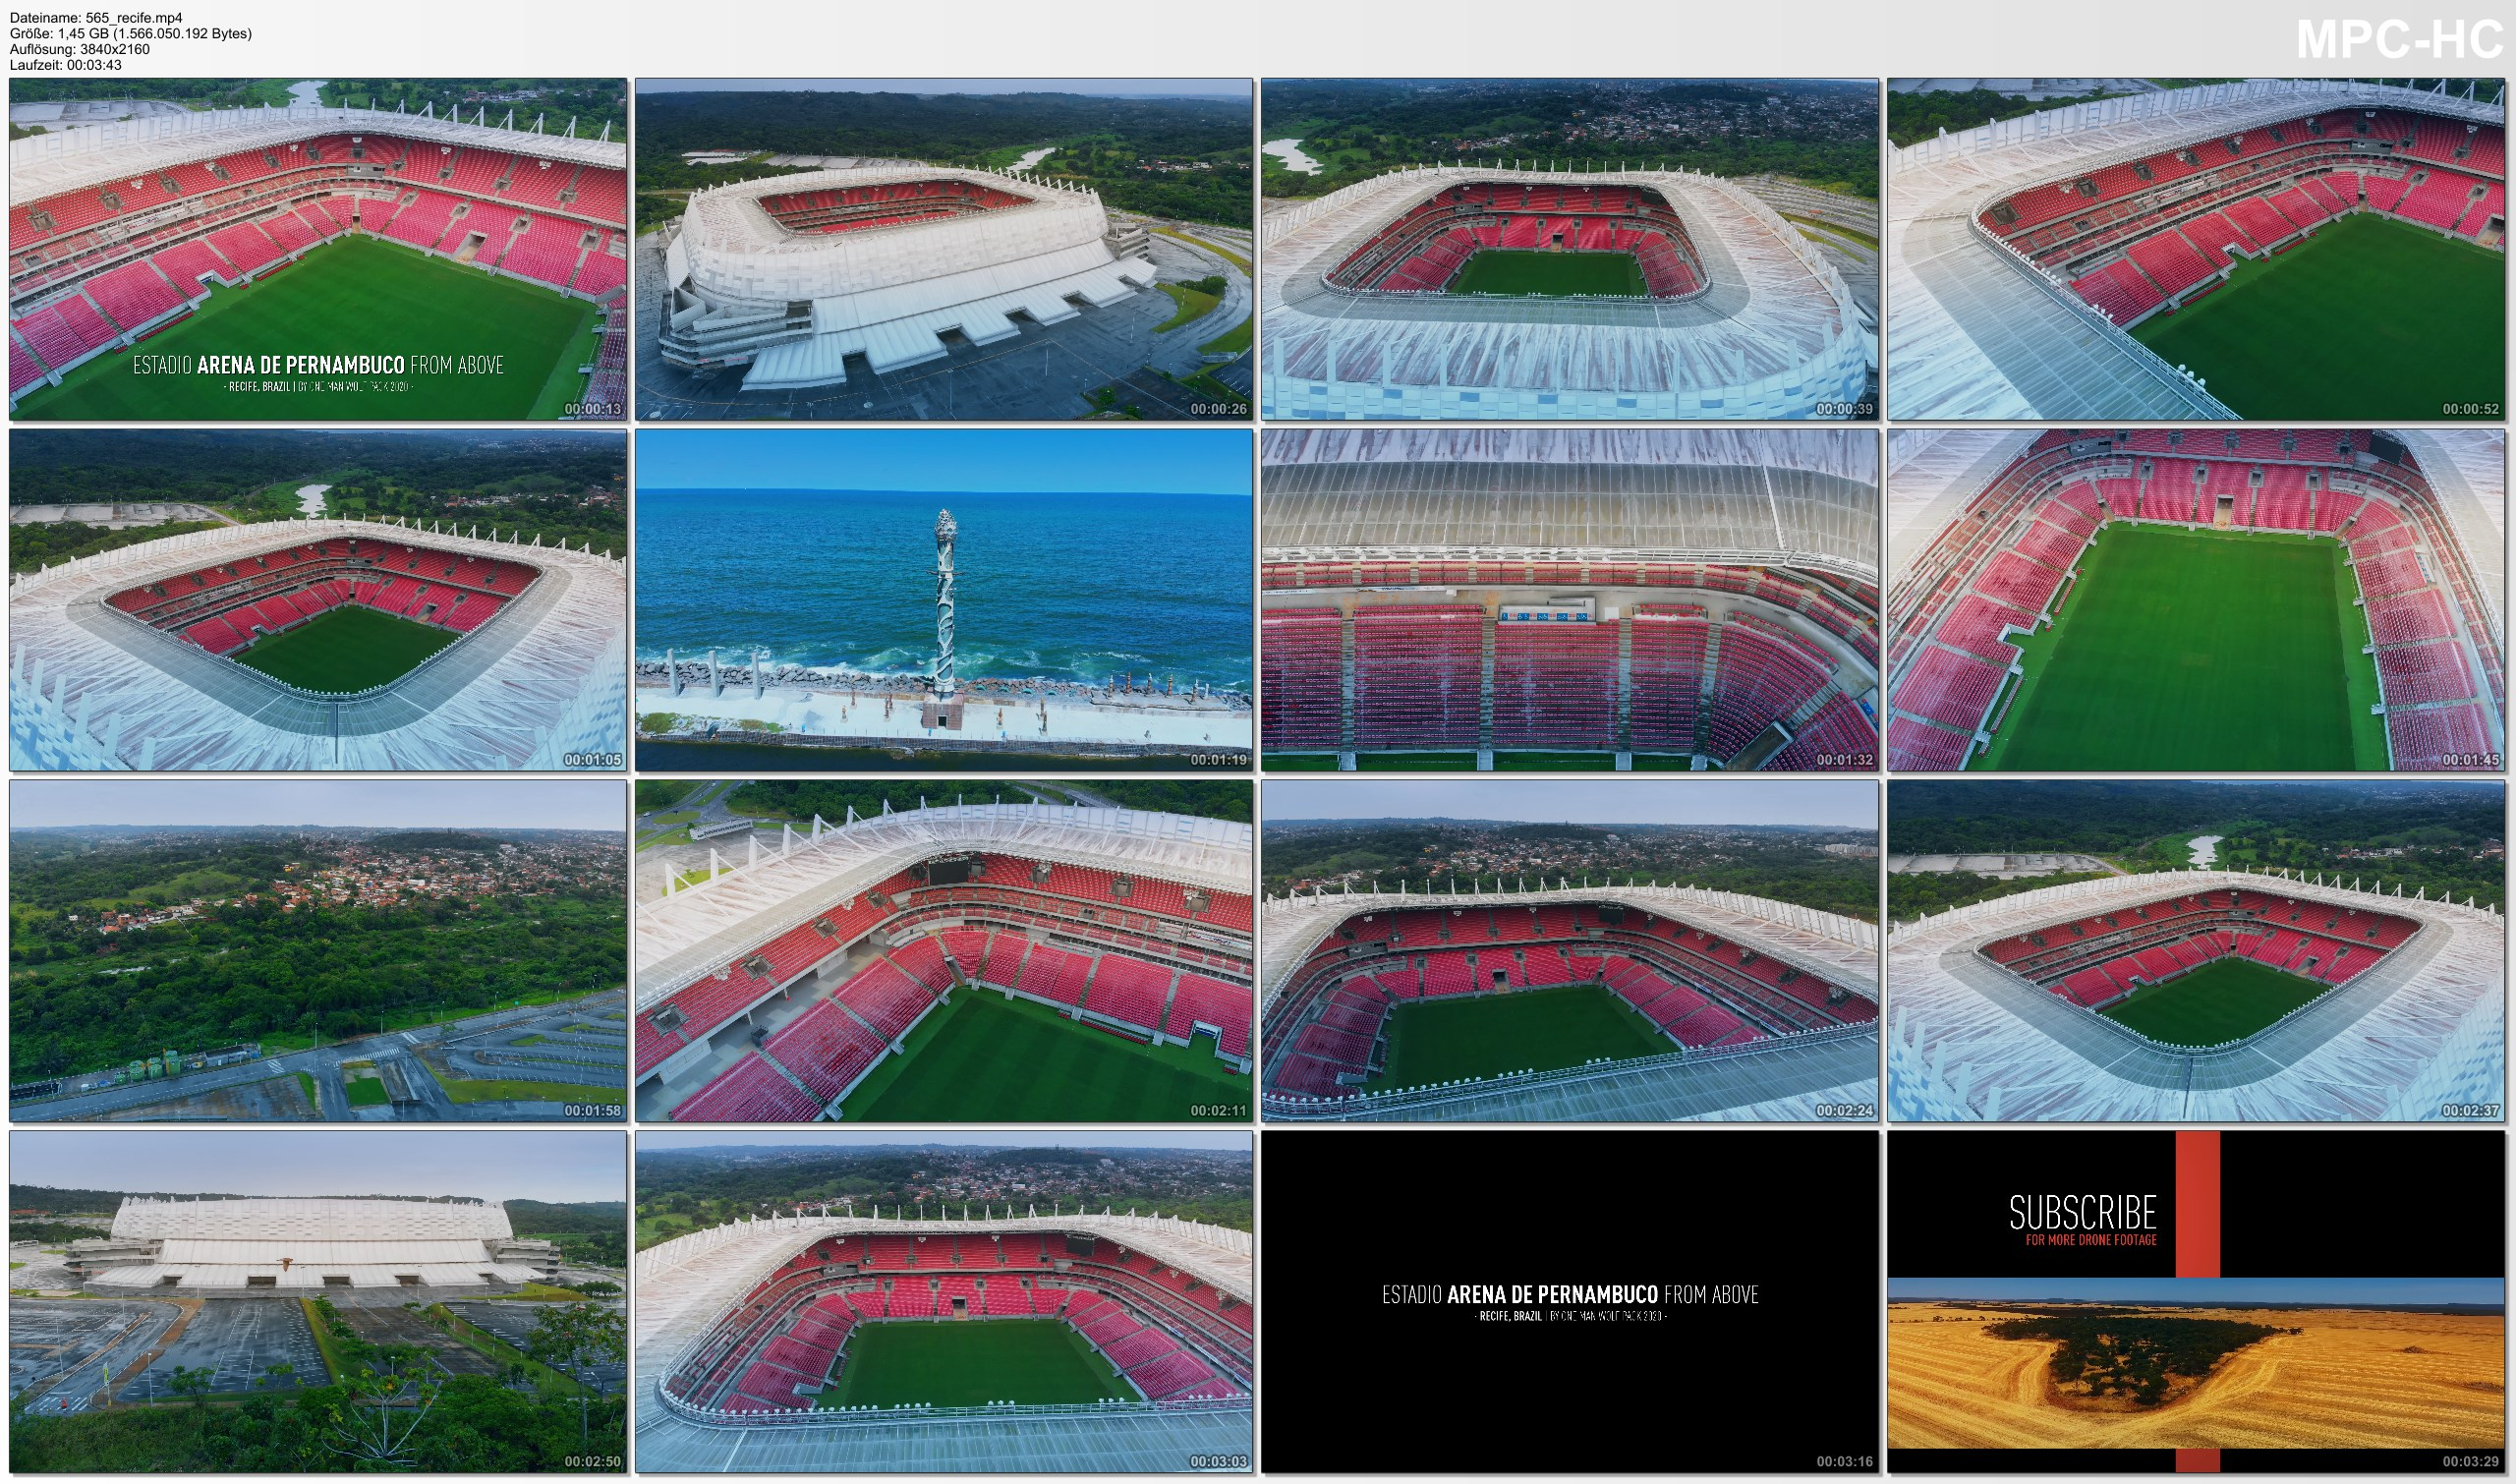 Drone Pictures from Video 【4K】Arena de Pernambuco from Above - BRAZIL 2020 | Cinematic Wolf Aerial™ Drone Film